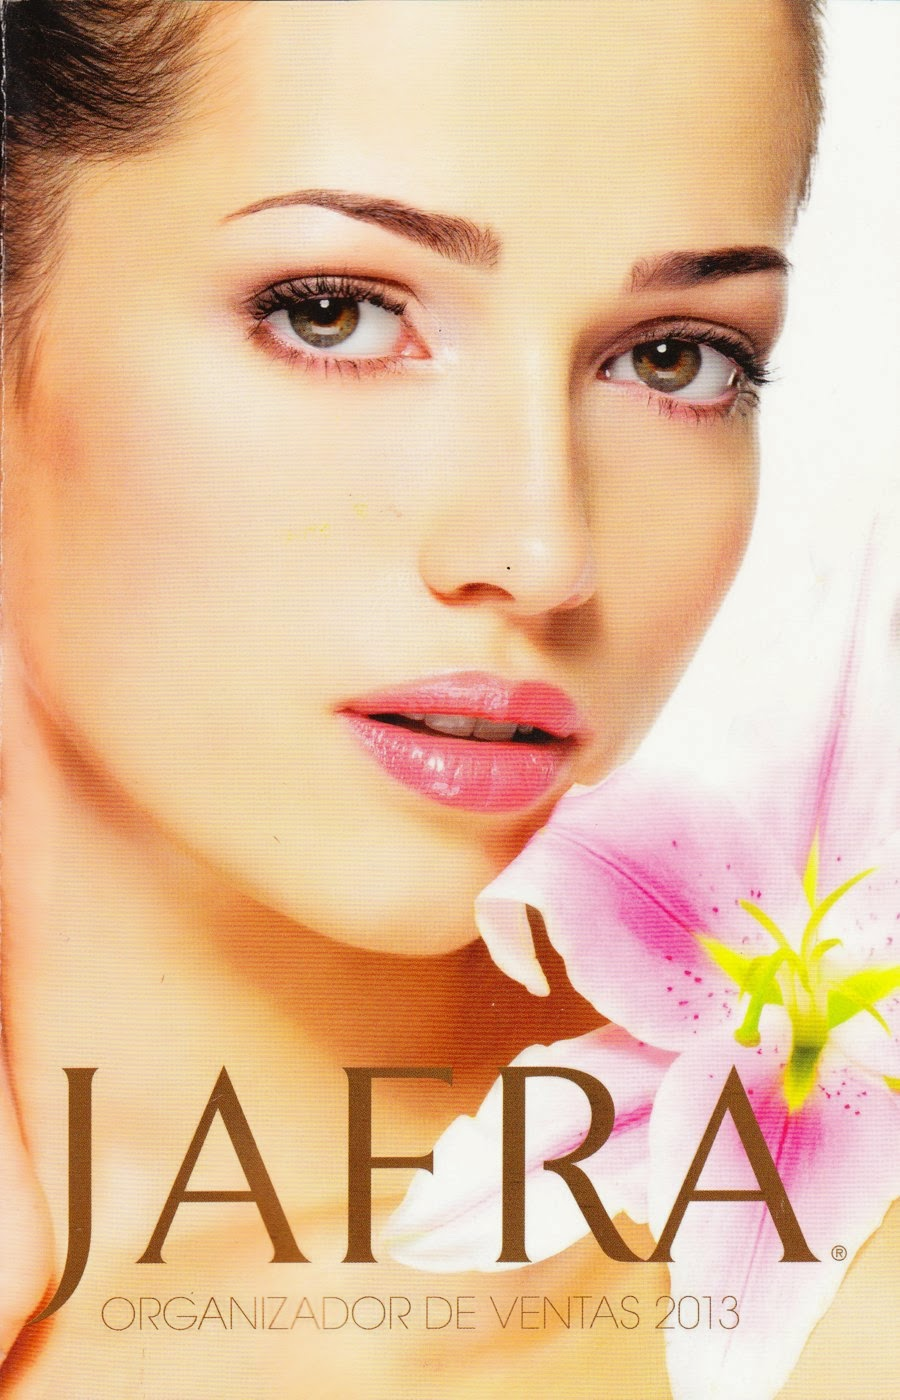 catalogo regular jafra